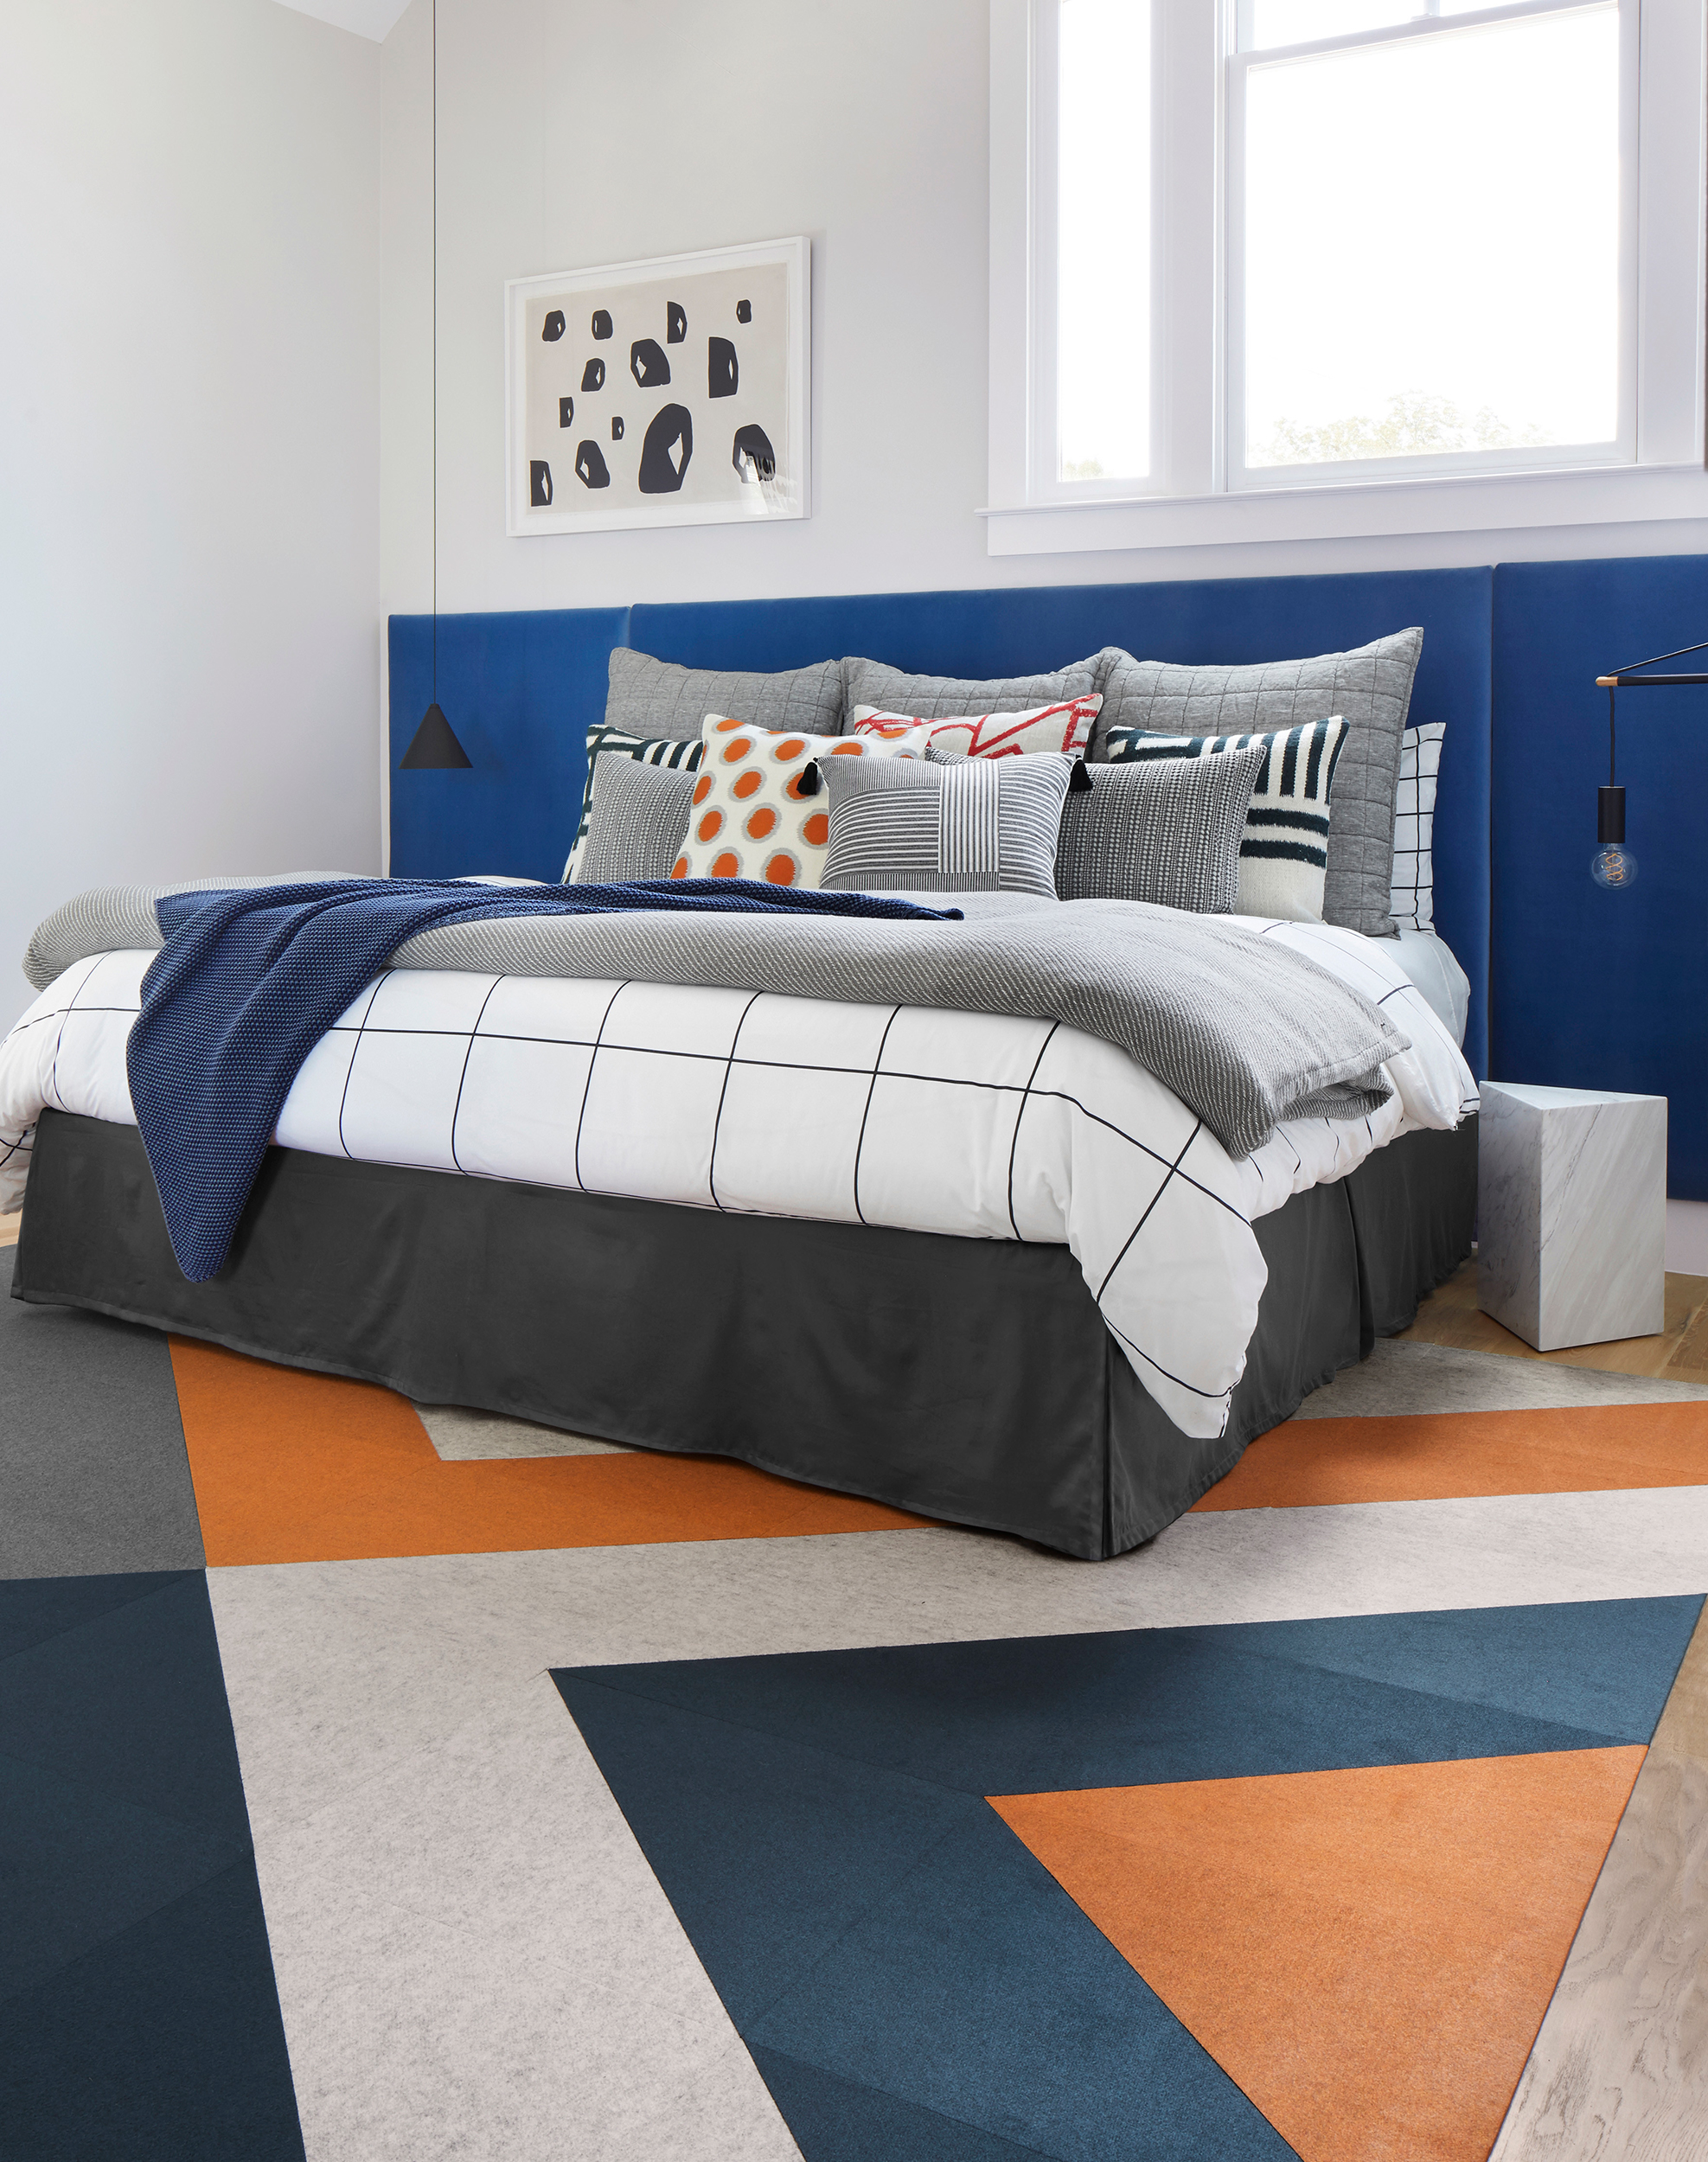 FLOR Fedora area rug in Oatmeal, Clementine, Flannel, and Lagoon, bed with blue, black, white, and gray bedding, and a marble side table.